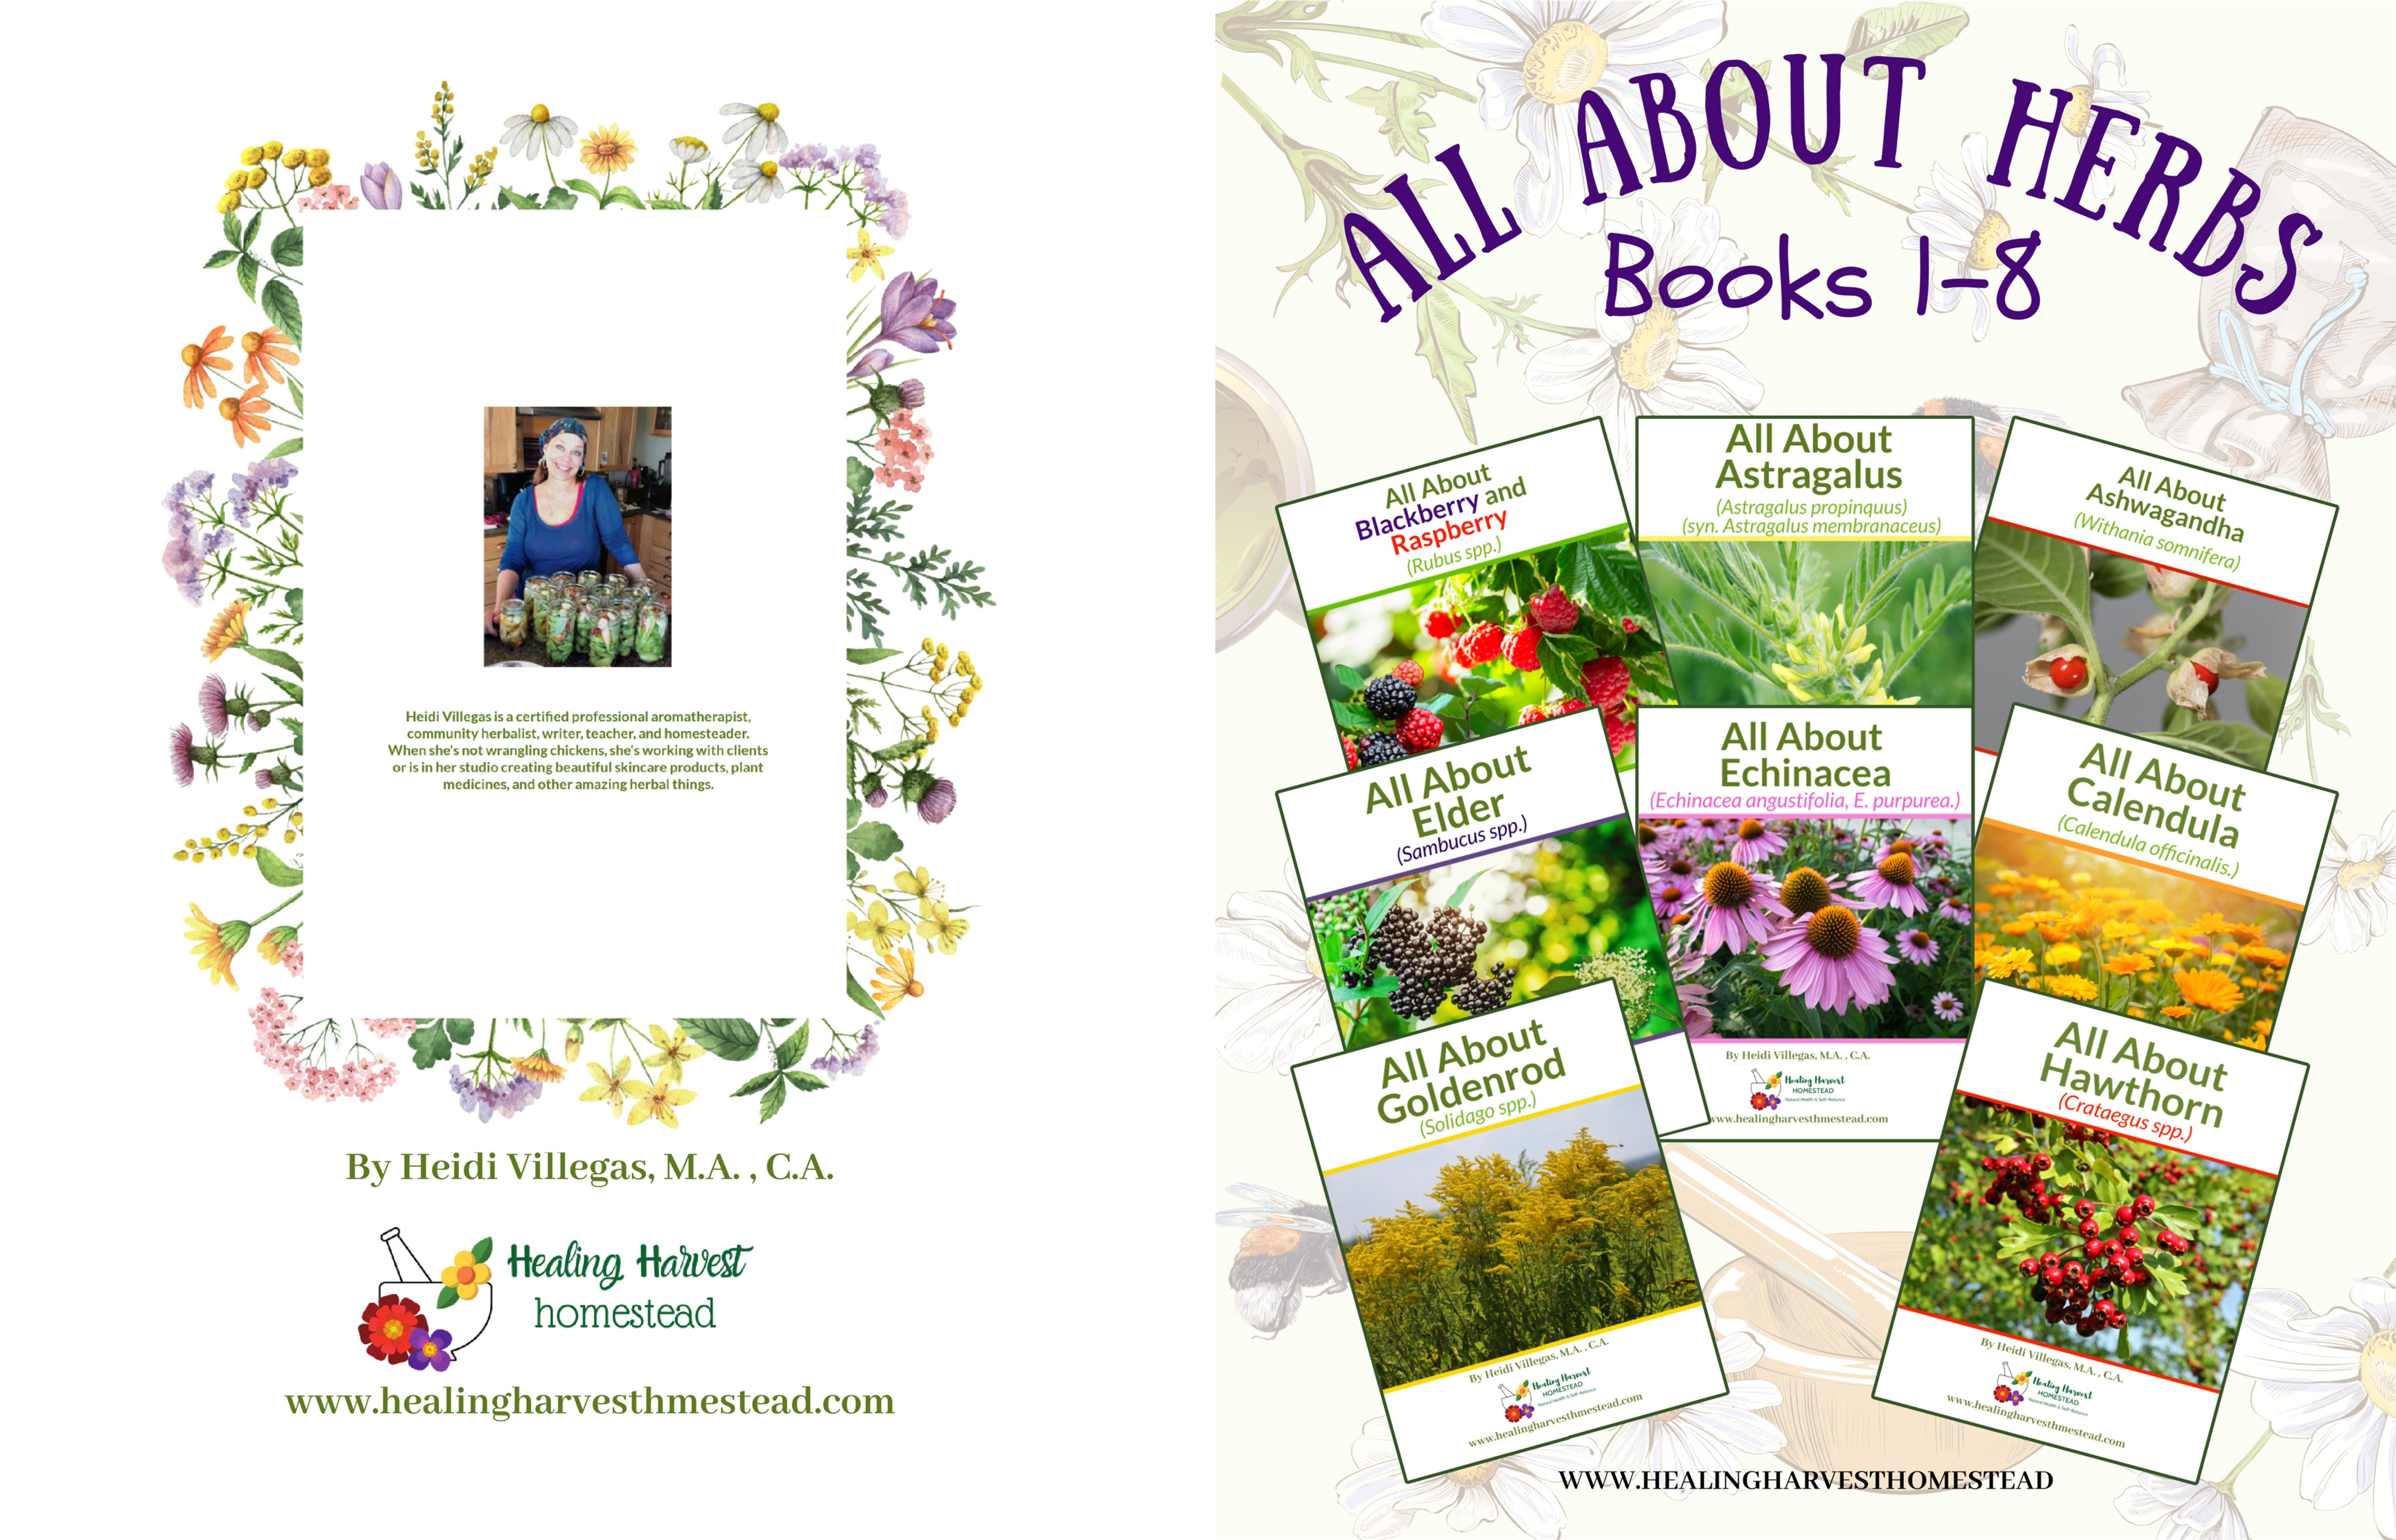 All About Herbs Books 1-8 cover image